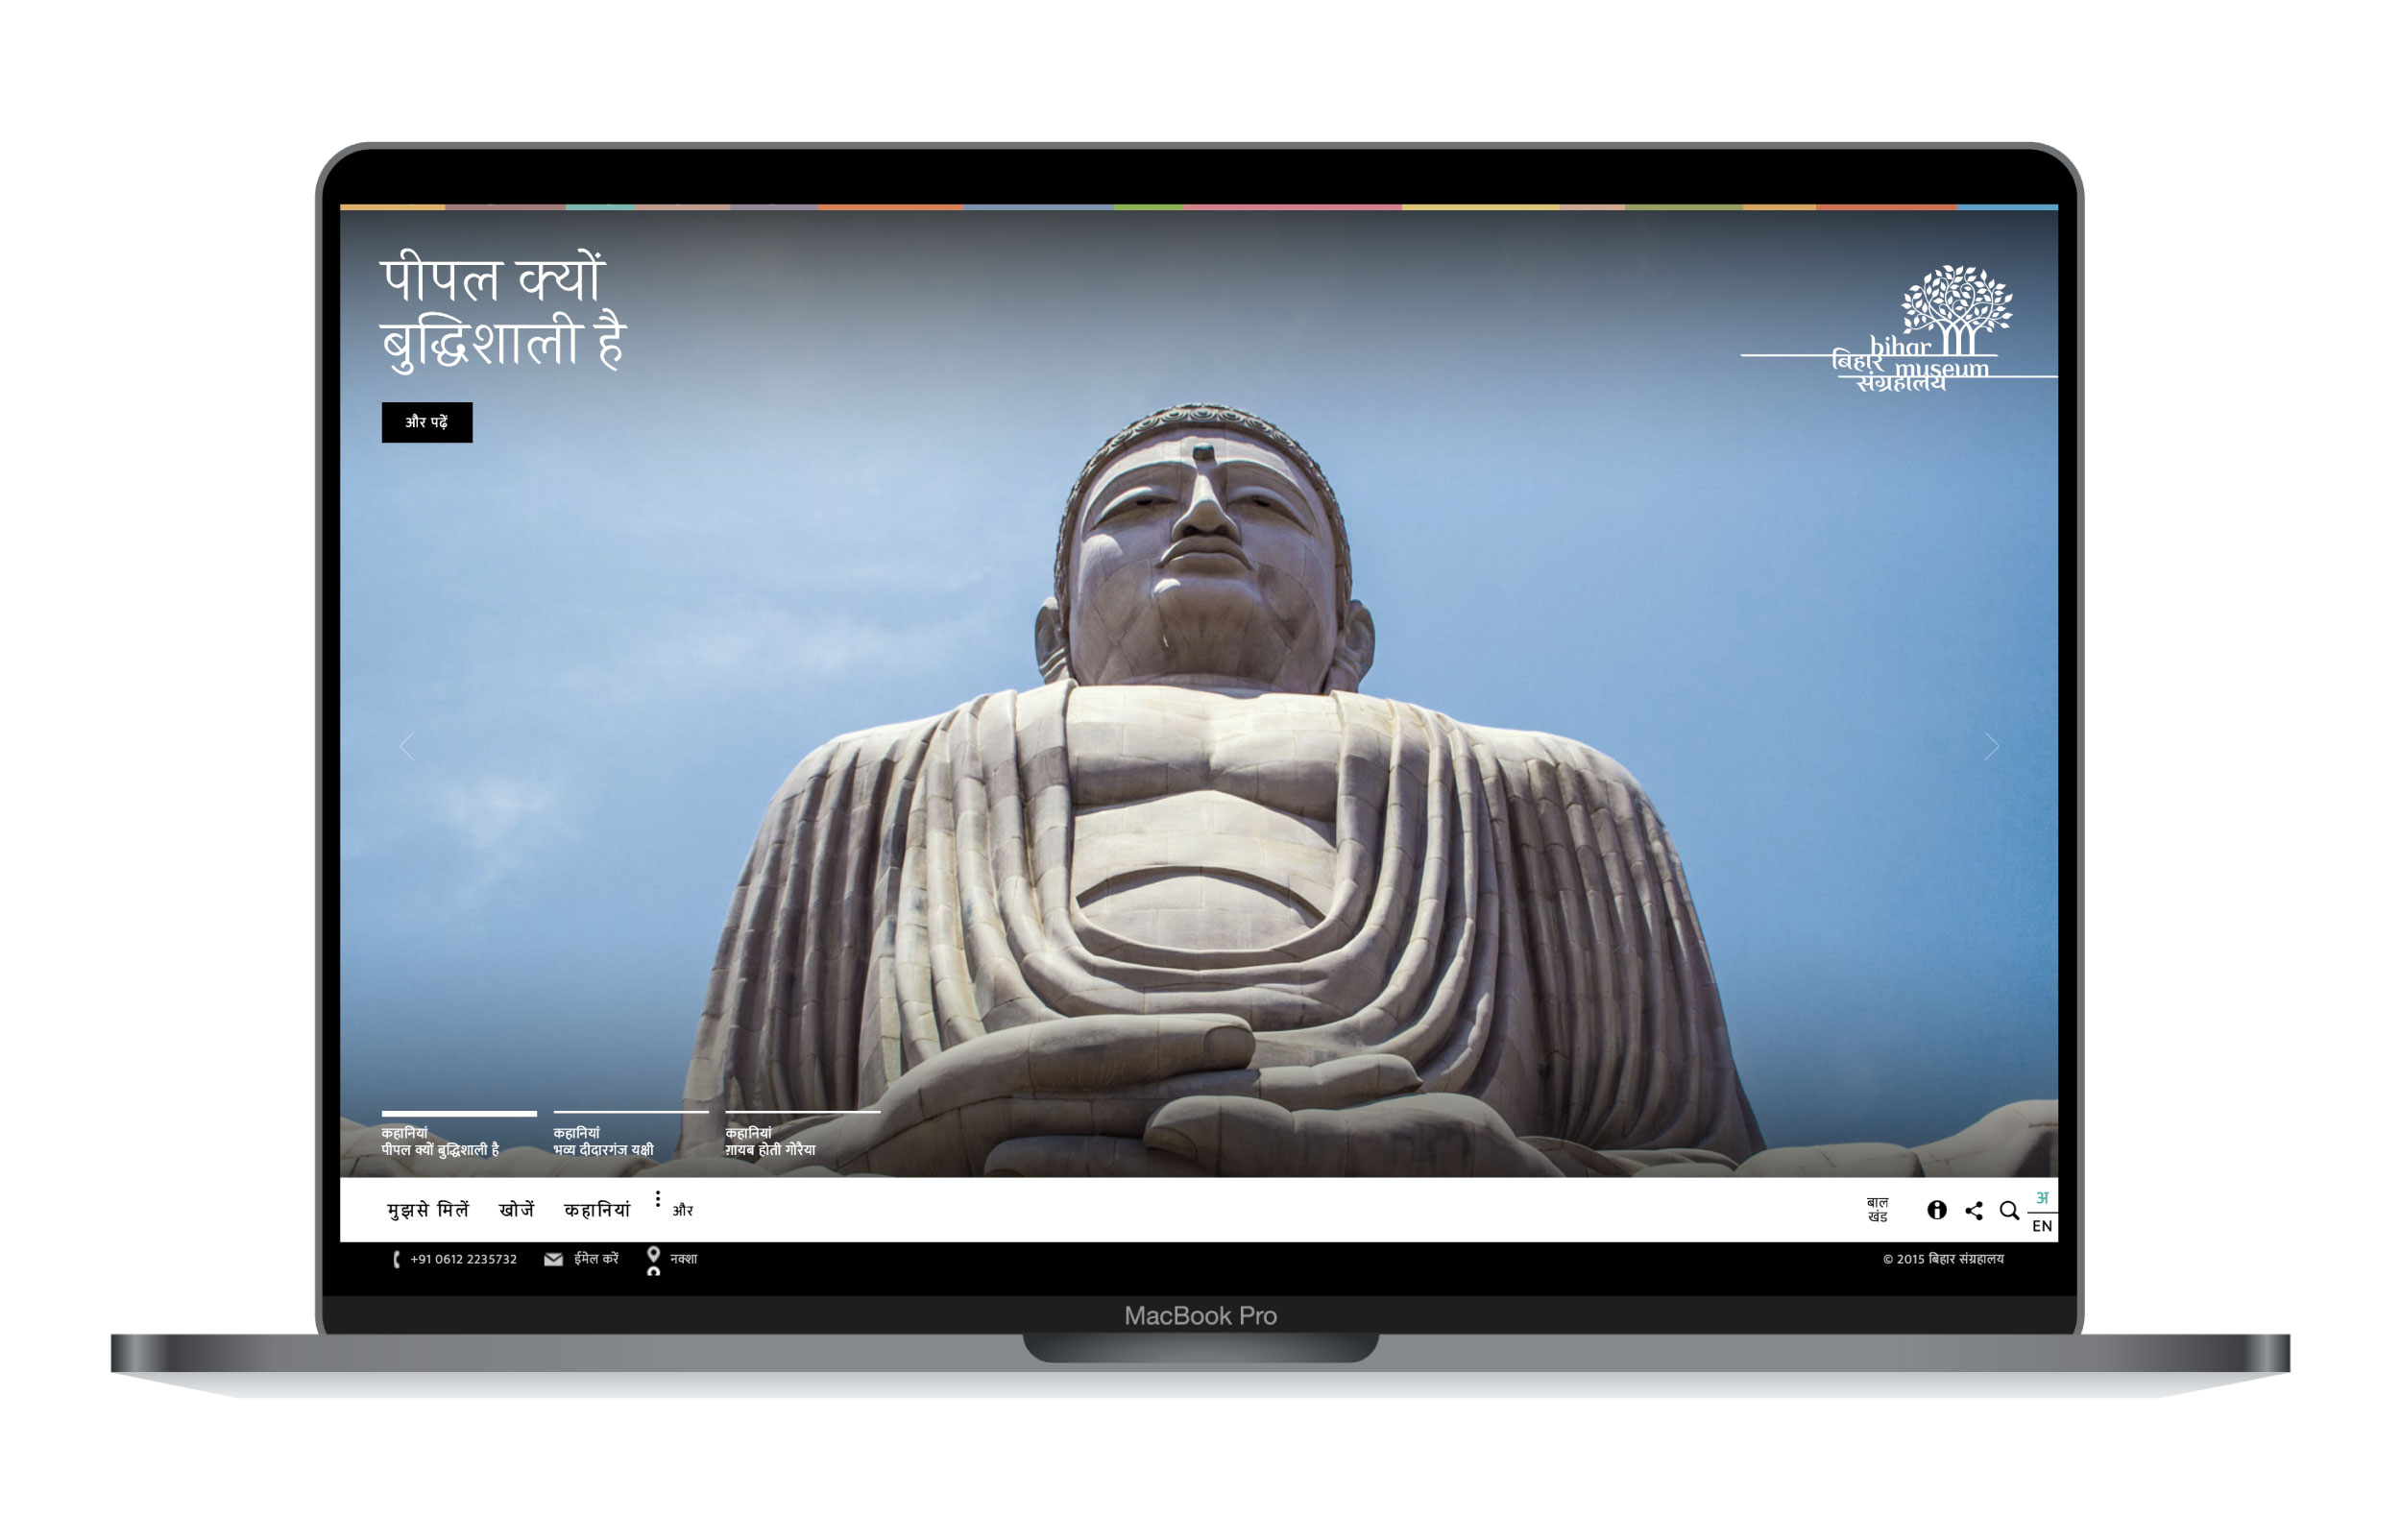 The website is bilingual, so it can be read in both english and hindi.